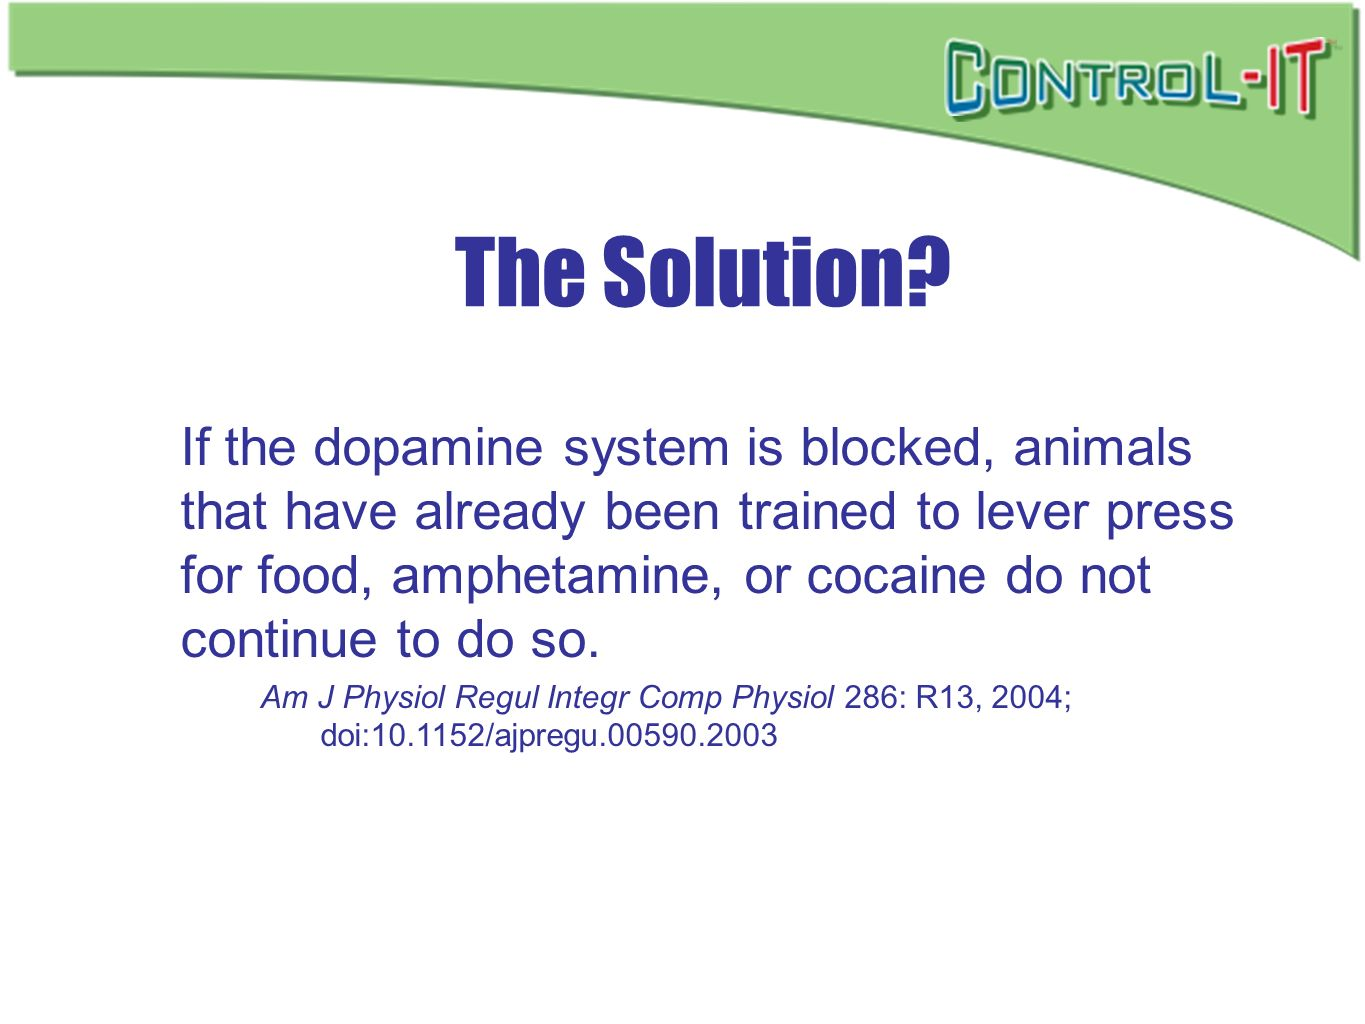 The Solution? If the dopamine system is blocked, animals that have already been trained to lever press for food, amphetamine, or cocaine do not contin